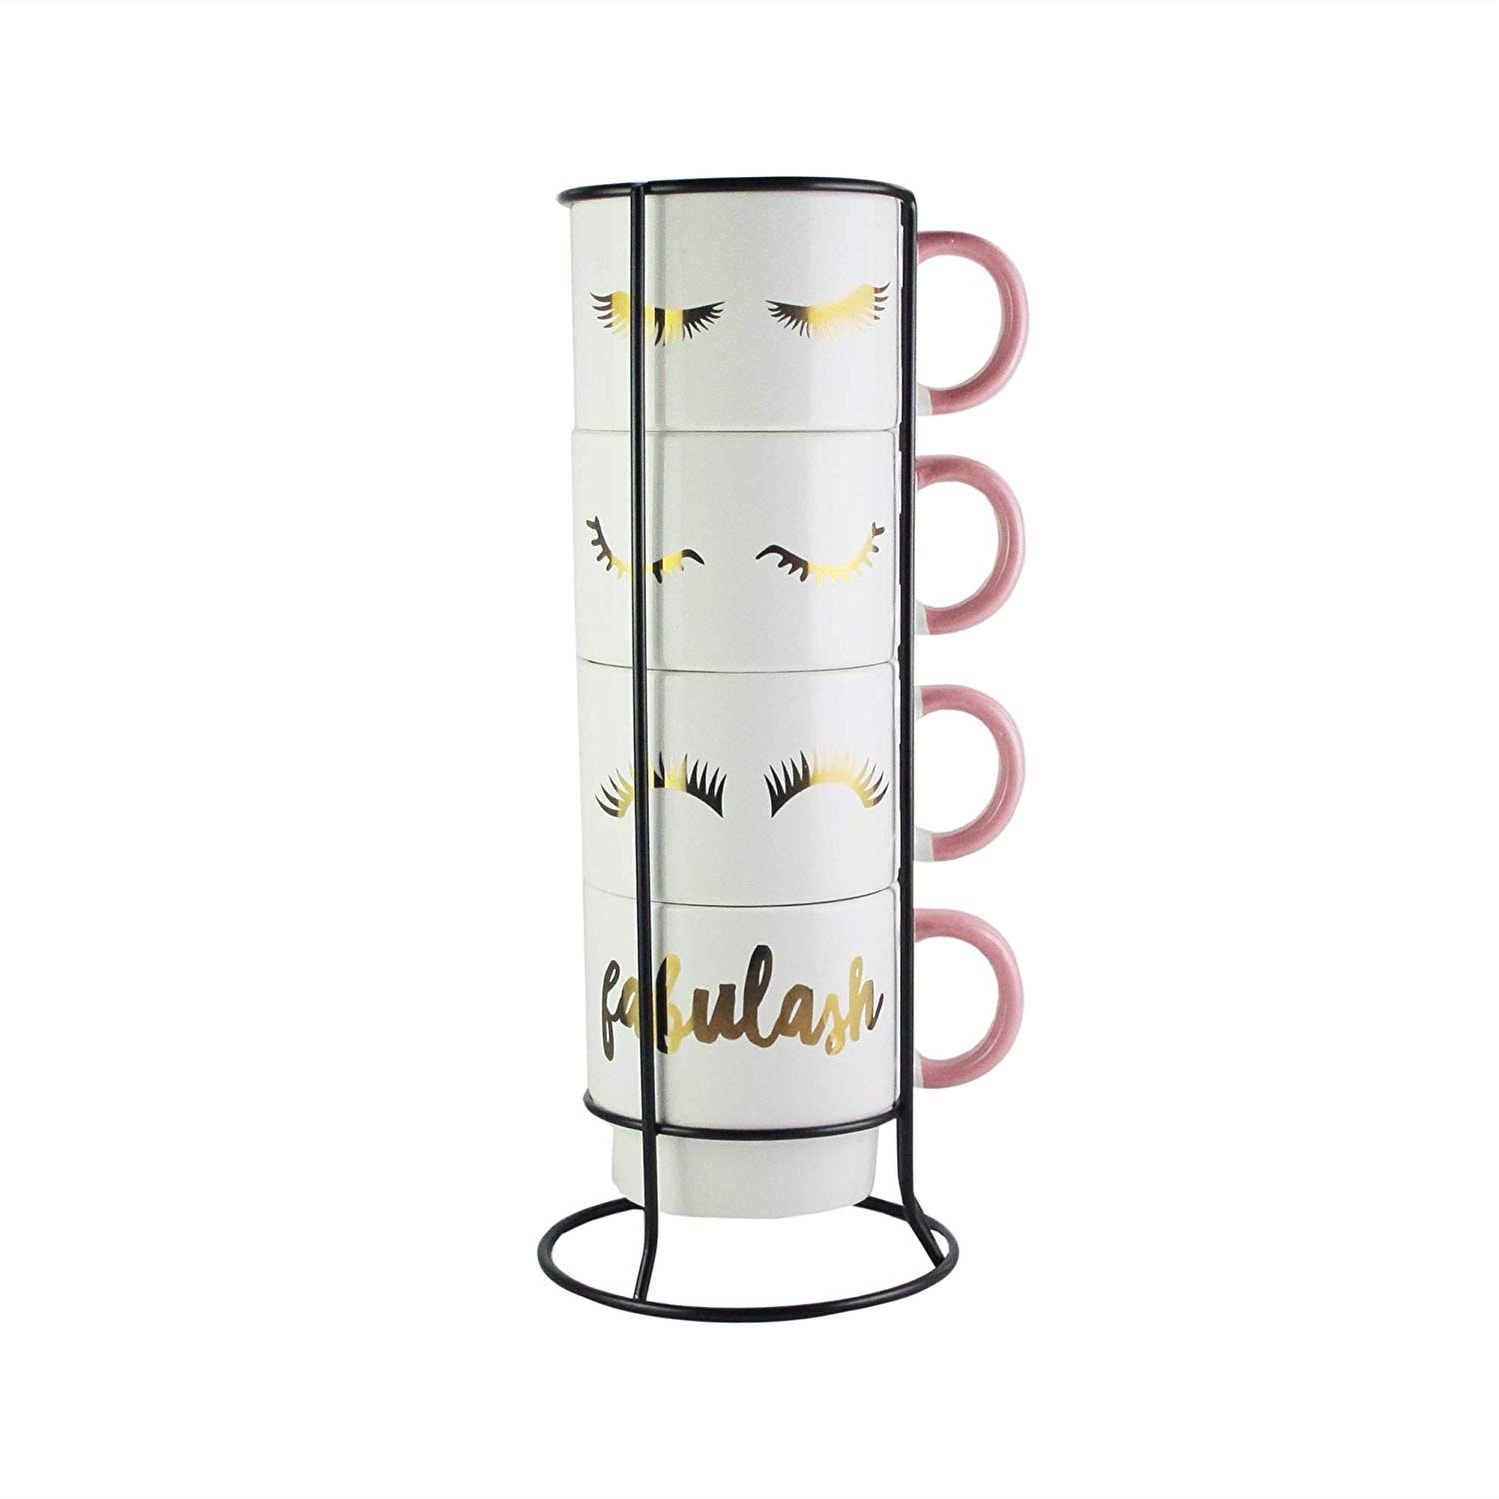 American Atelier Ceramic 4 14 Oz Mug Metal Rack Set For Tea Coffee White On Sale Overstock 30149982